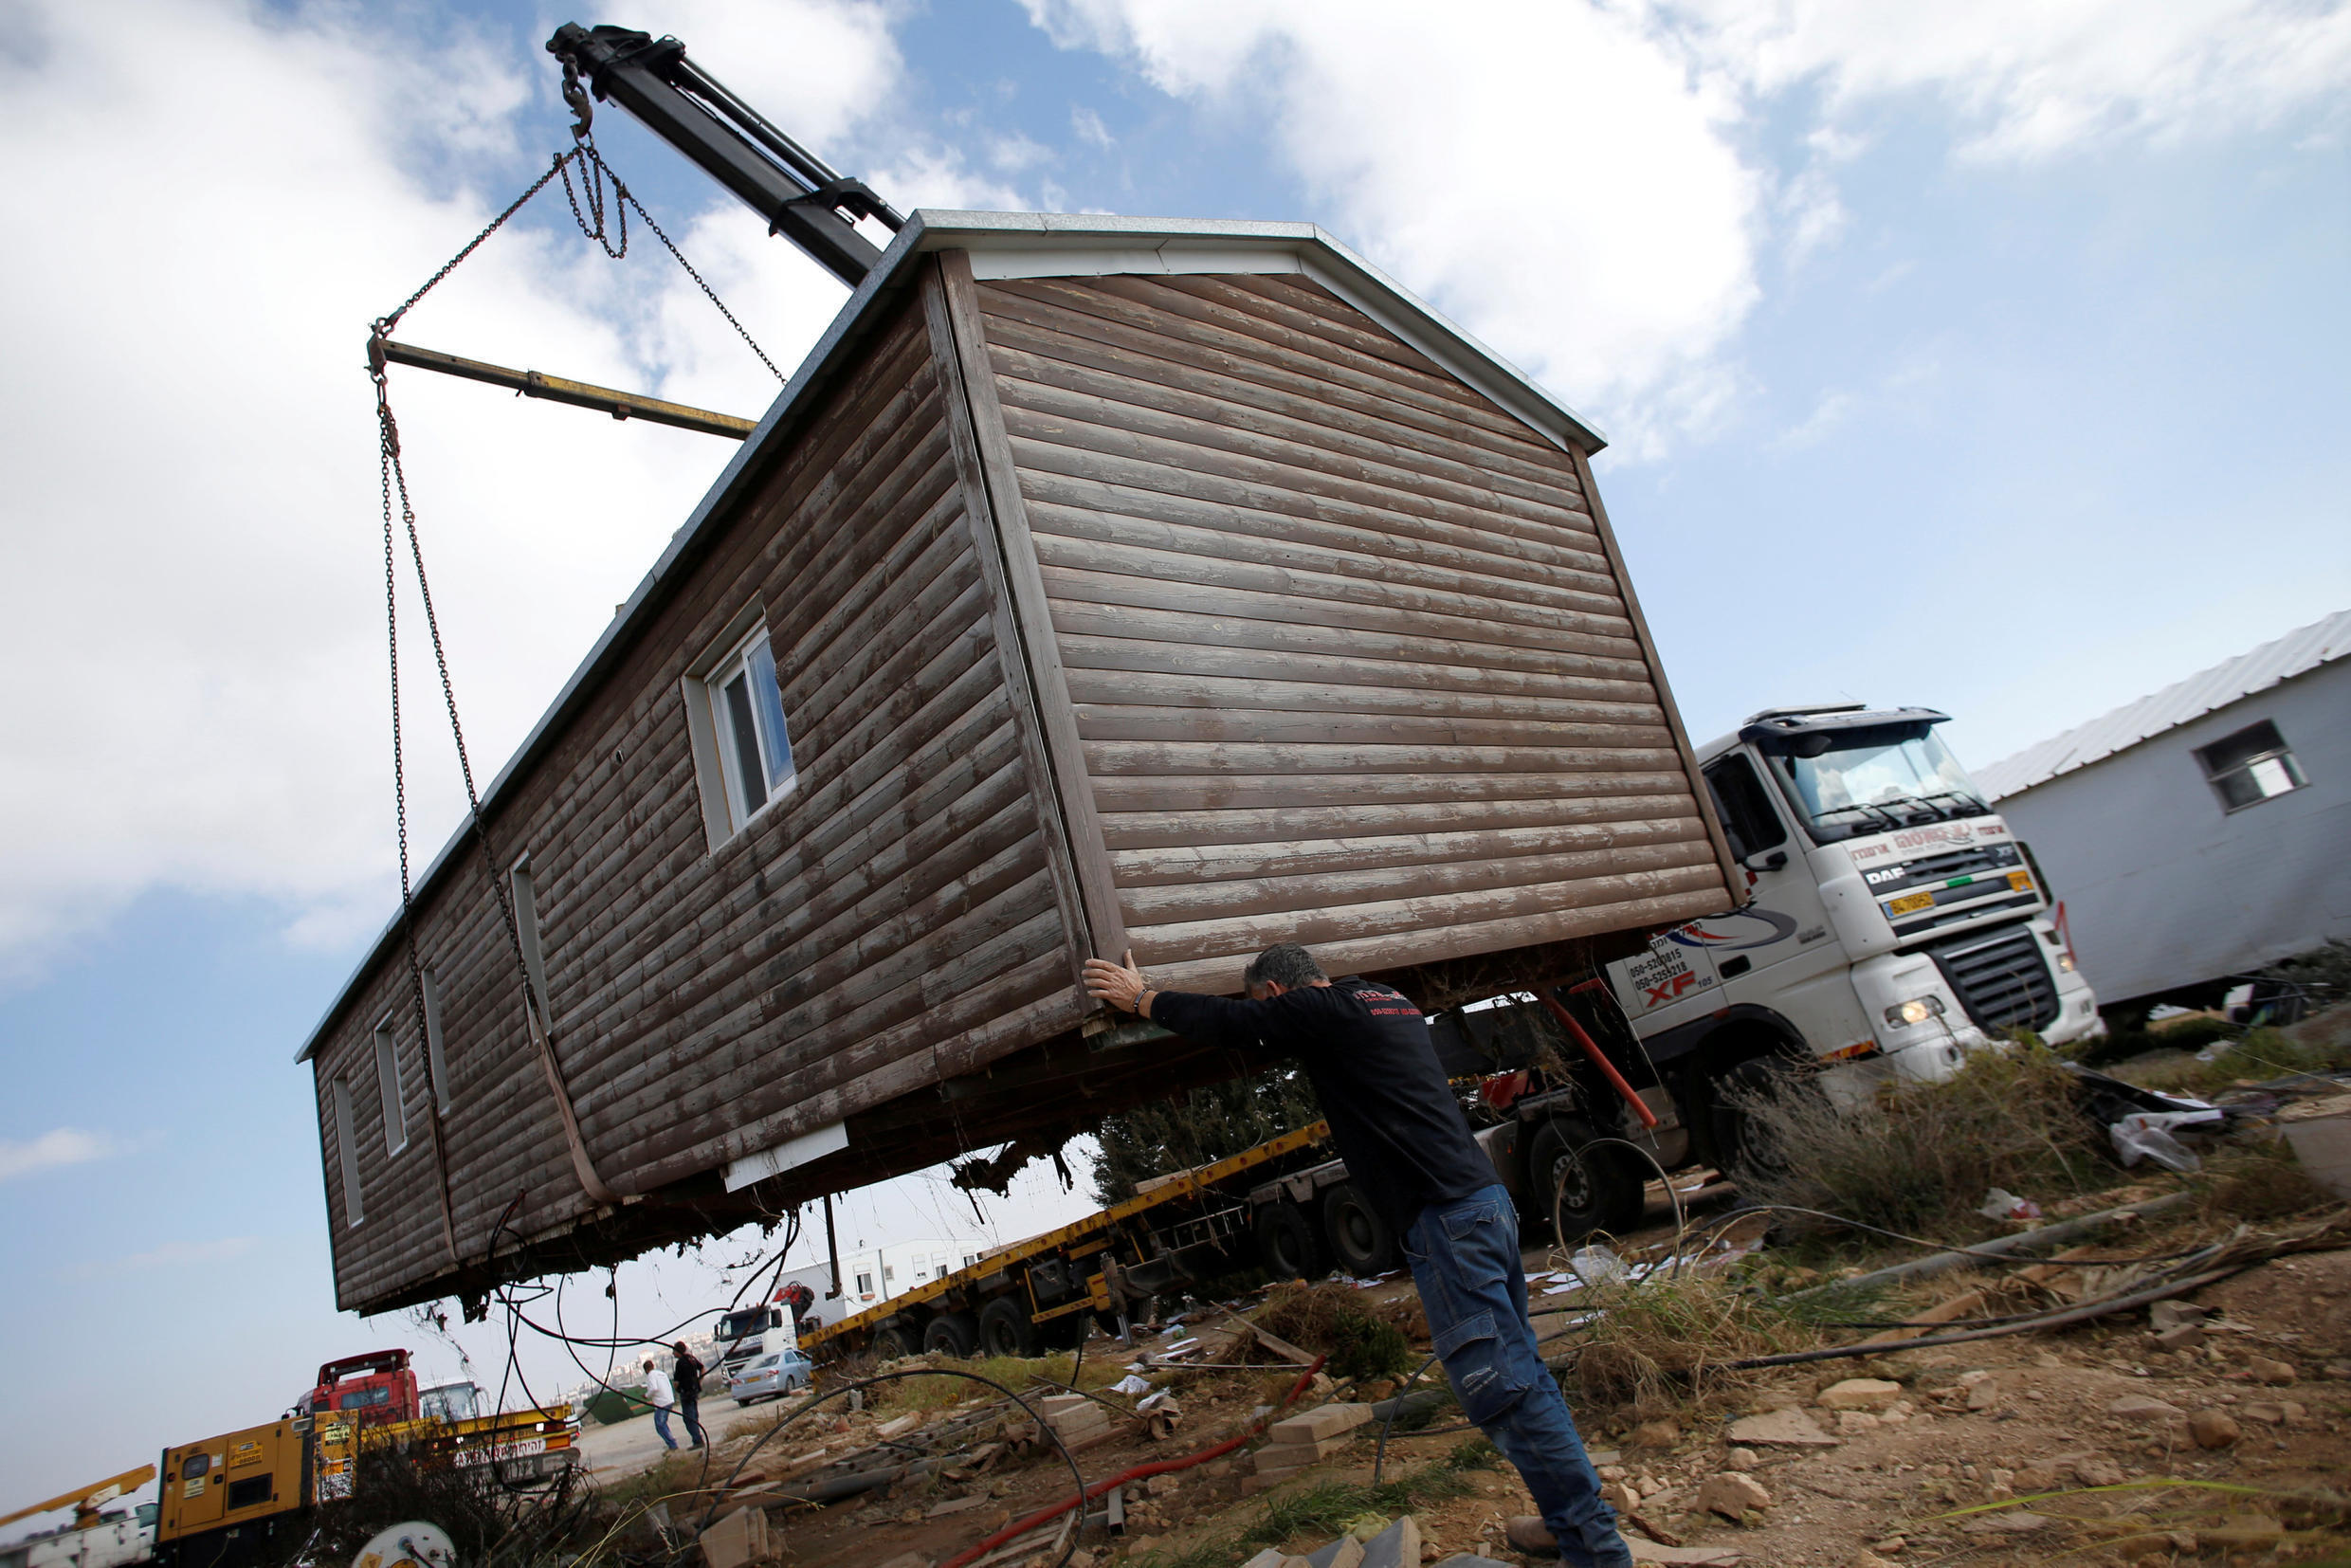 Experts say the new law is seen as compensation to the settlers in view of the evacuations in Amona and Ofra.